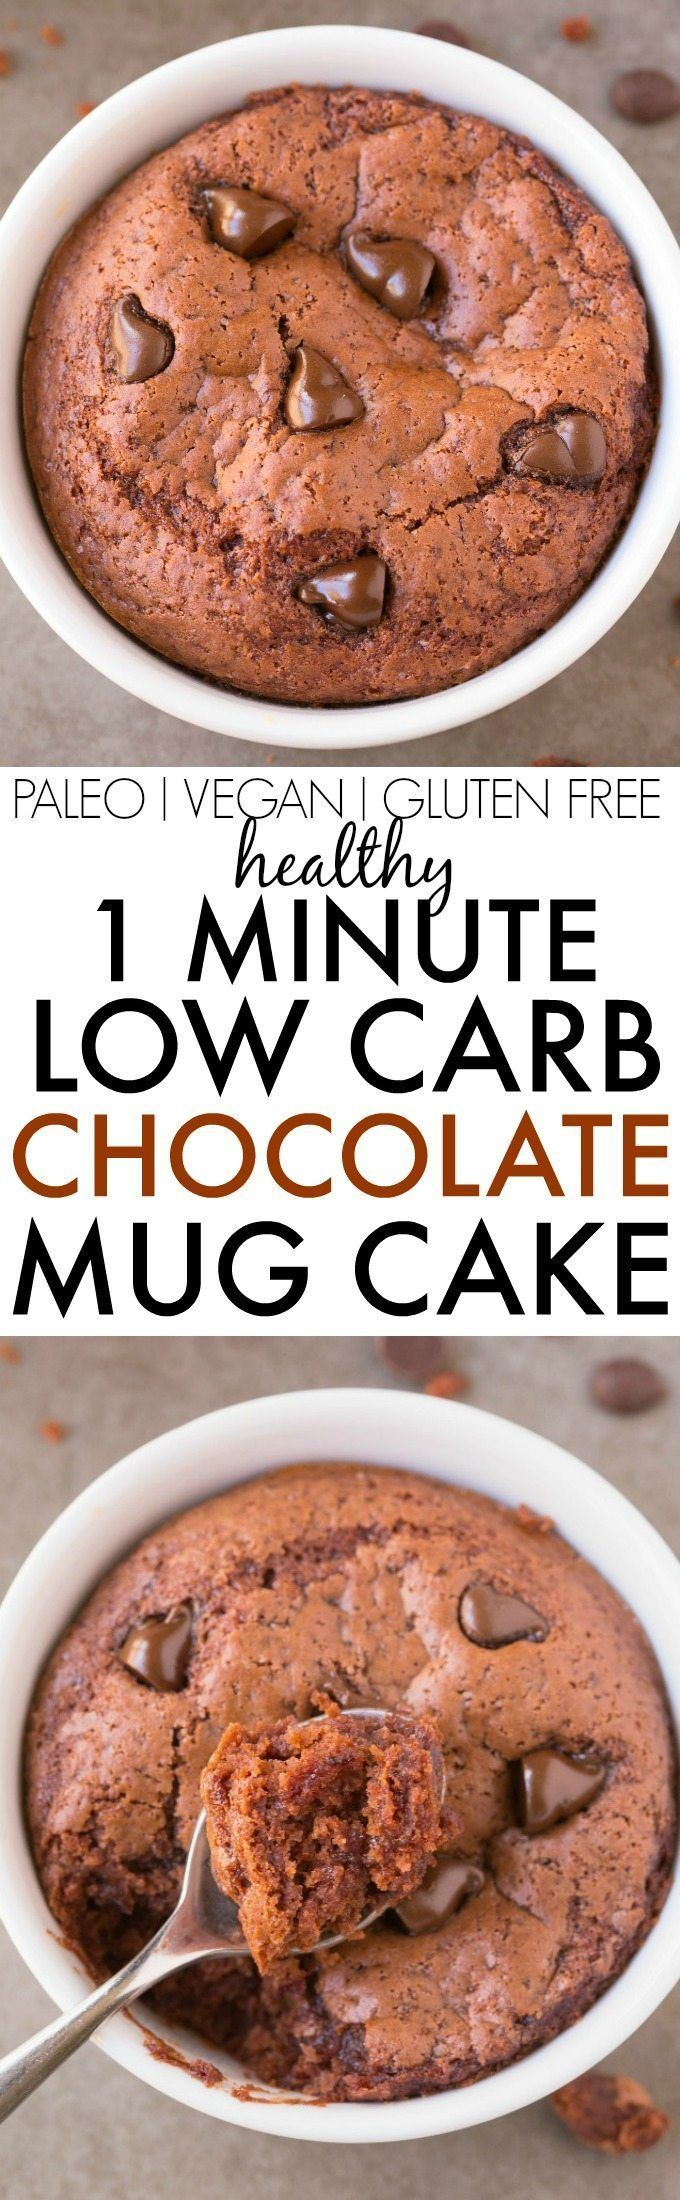 Healthy 1 Minute LOW CARB Chocolate Mug Cake- Light, fluffy and moist in the inside! Packed full of protein and no sugar whatsoever! {vegan, gluten free, paleo recipe}- thebigmansworld.com #proteinmugcakes